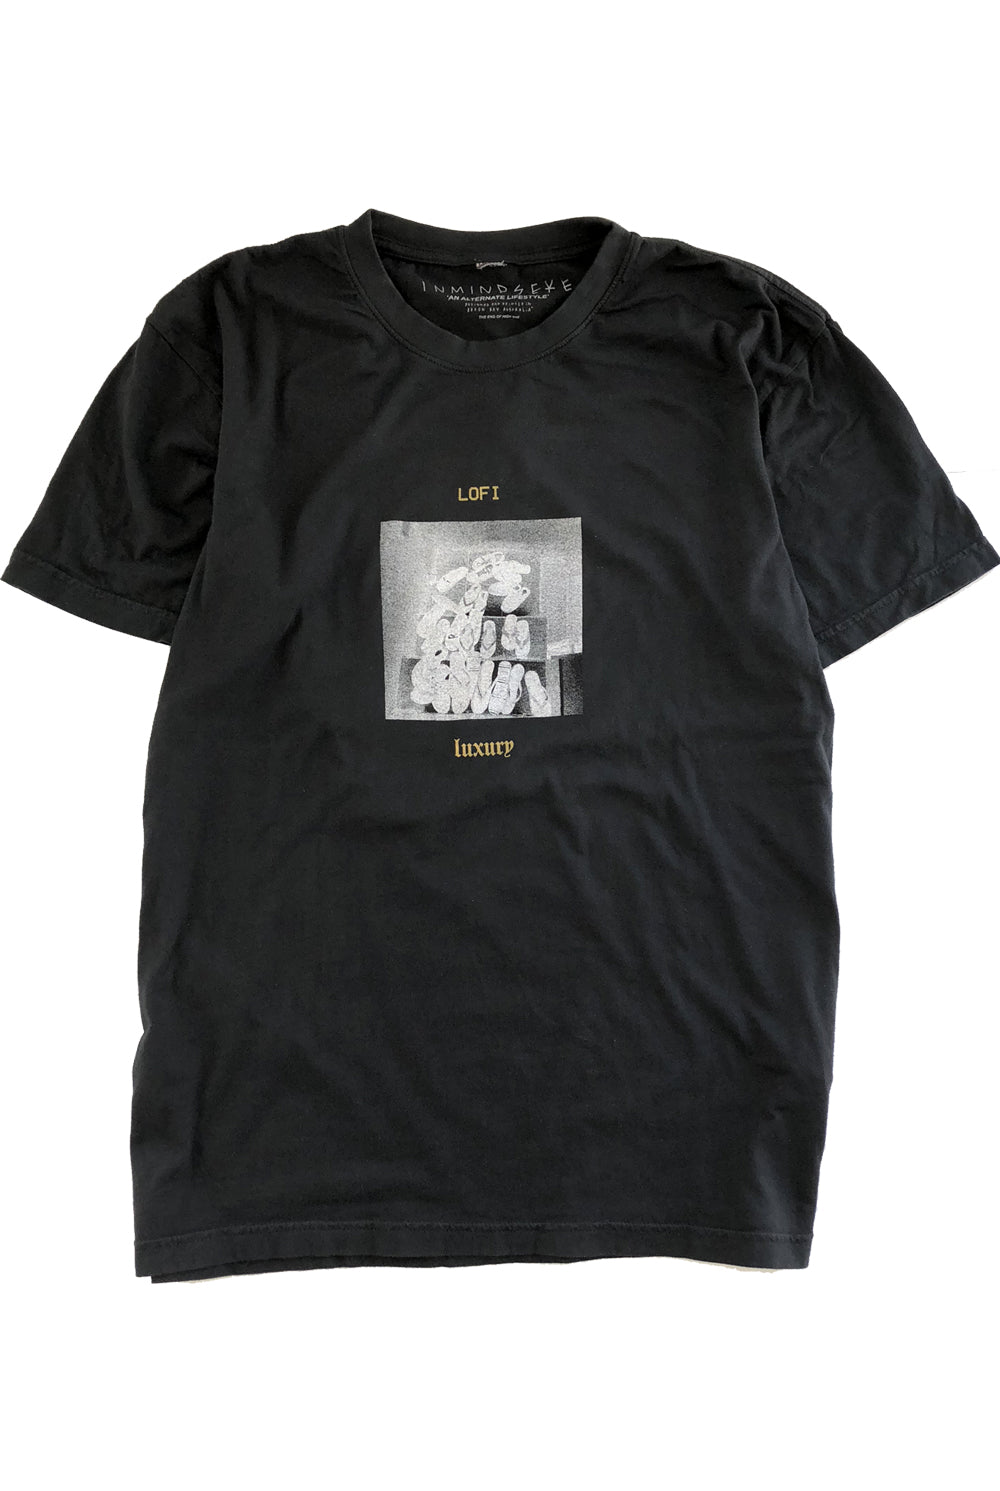 the PINES tee / band tee black